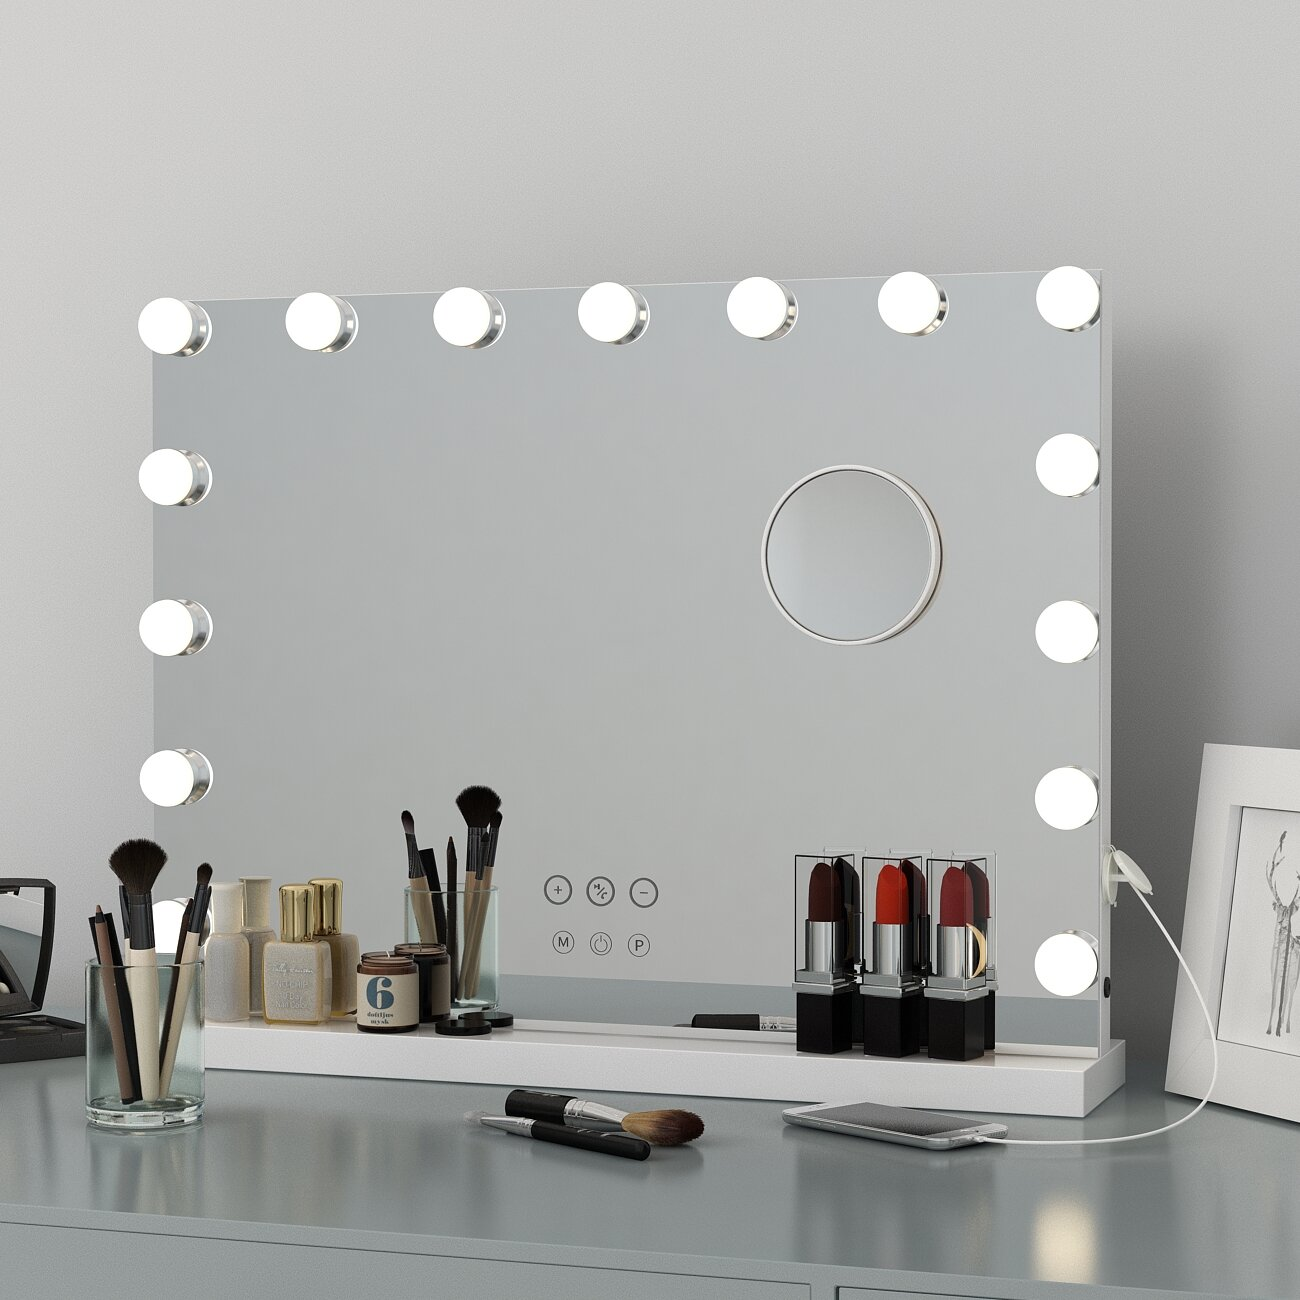 House Of Hampton Large Vanity Makeup Mirror With Lights Hollywood Lighted Mirror With 15 Pcs Dimmable Led Bulbs For Dressing Room Tabletop Mirror Or Wall Mounted Detachable 10x Magnification Spot Mirror Wayfair Ca